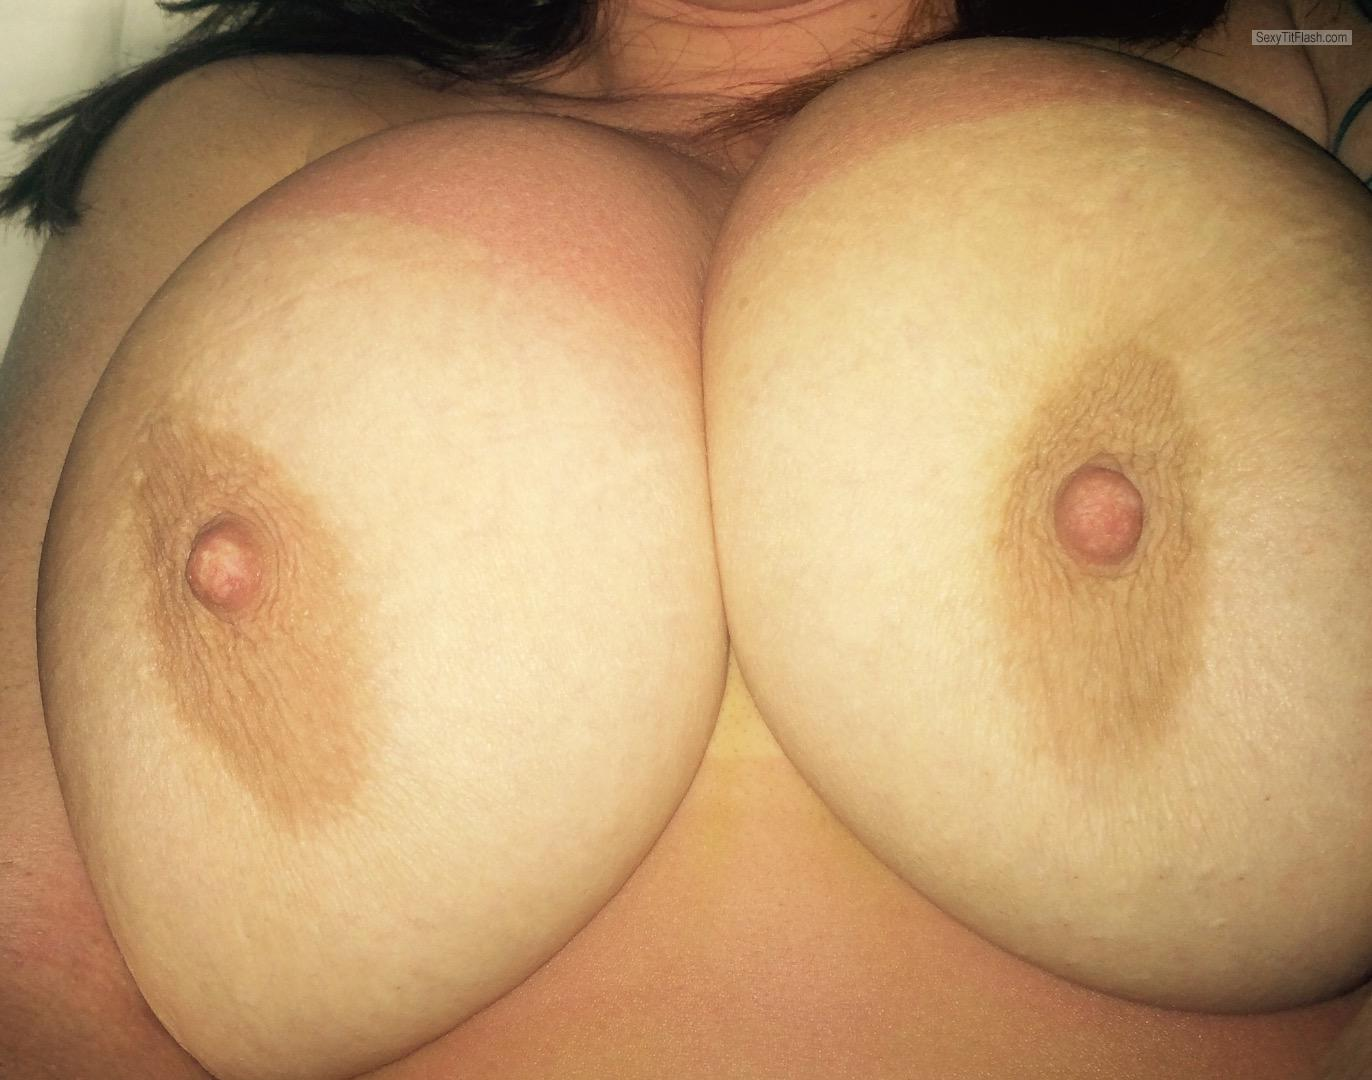 Tit Flash: My Tanlined Very Big Tits (Selfie) - R.BOOBIEs from Canada